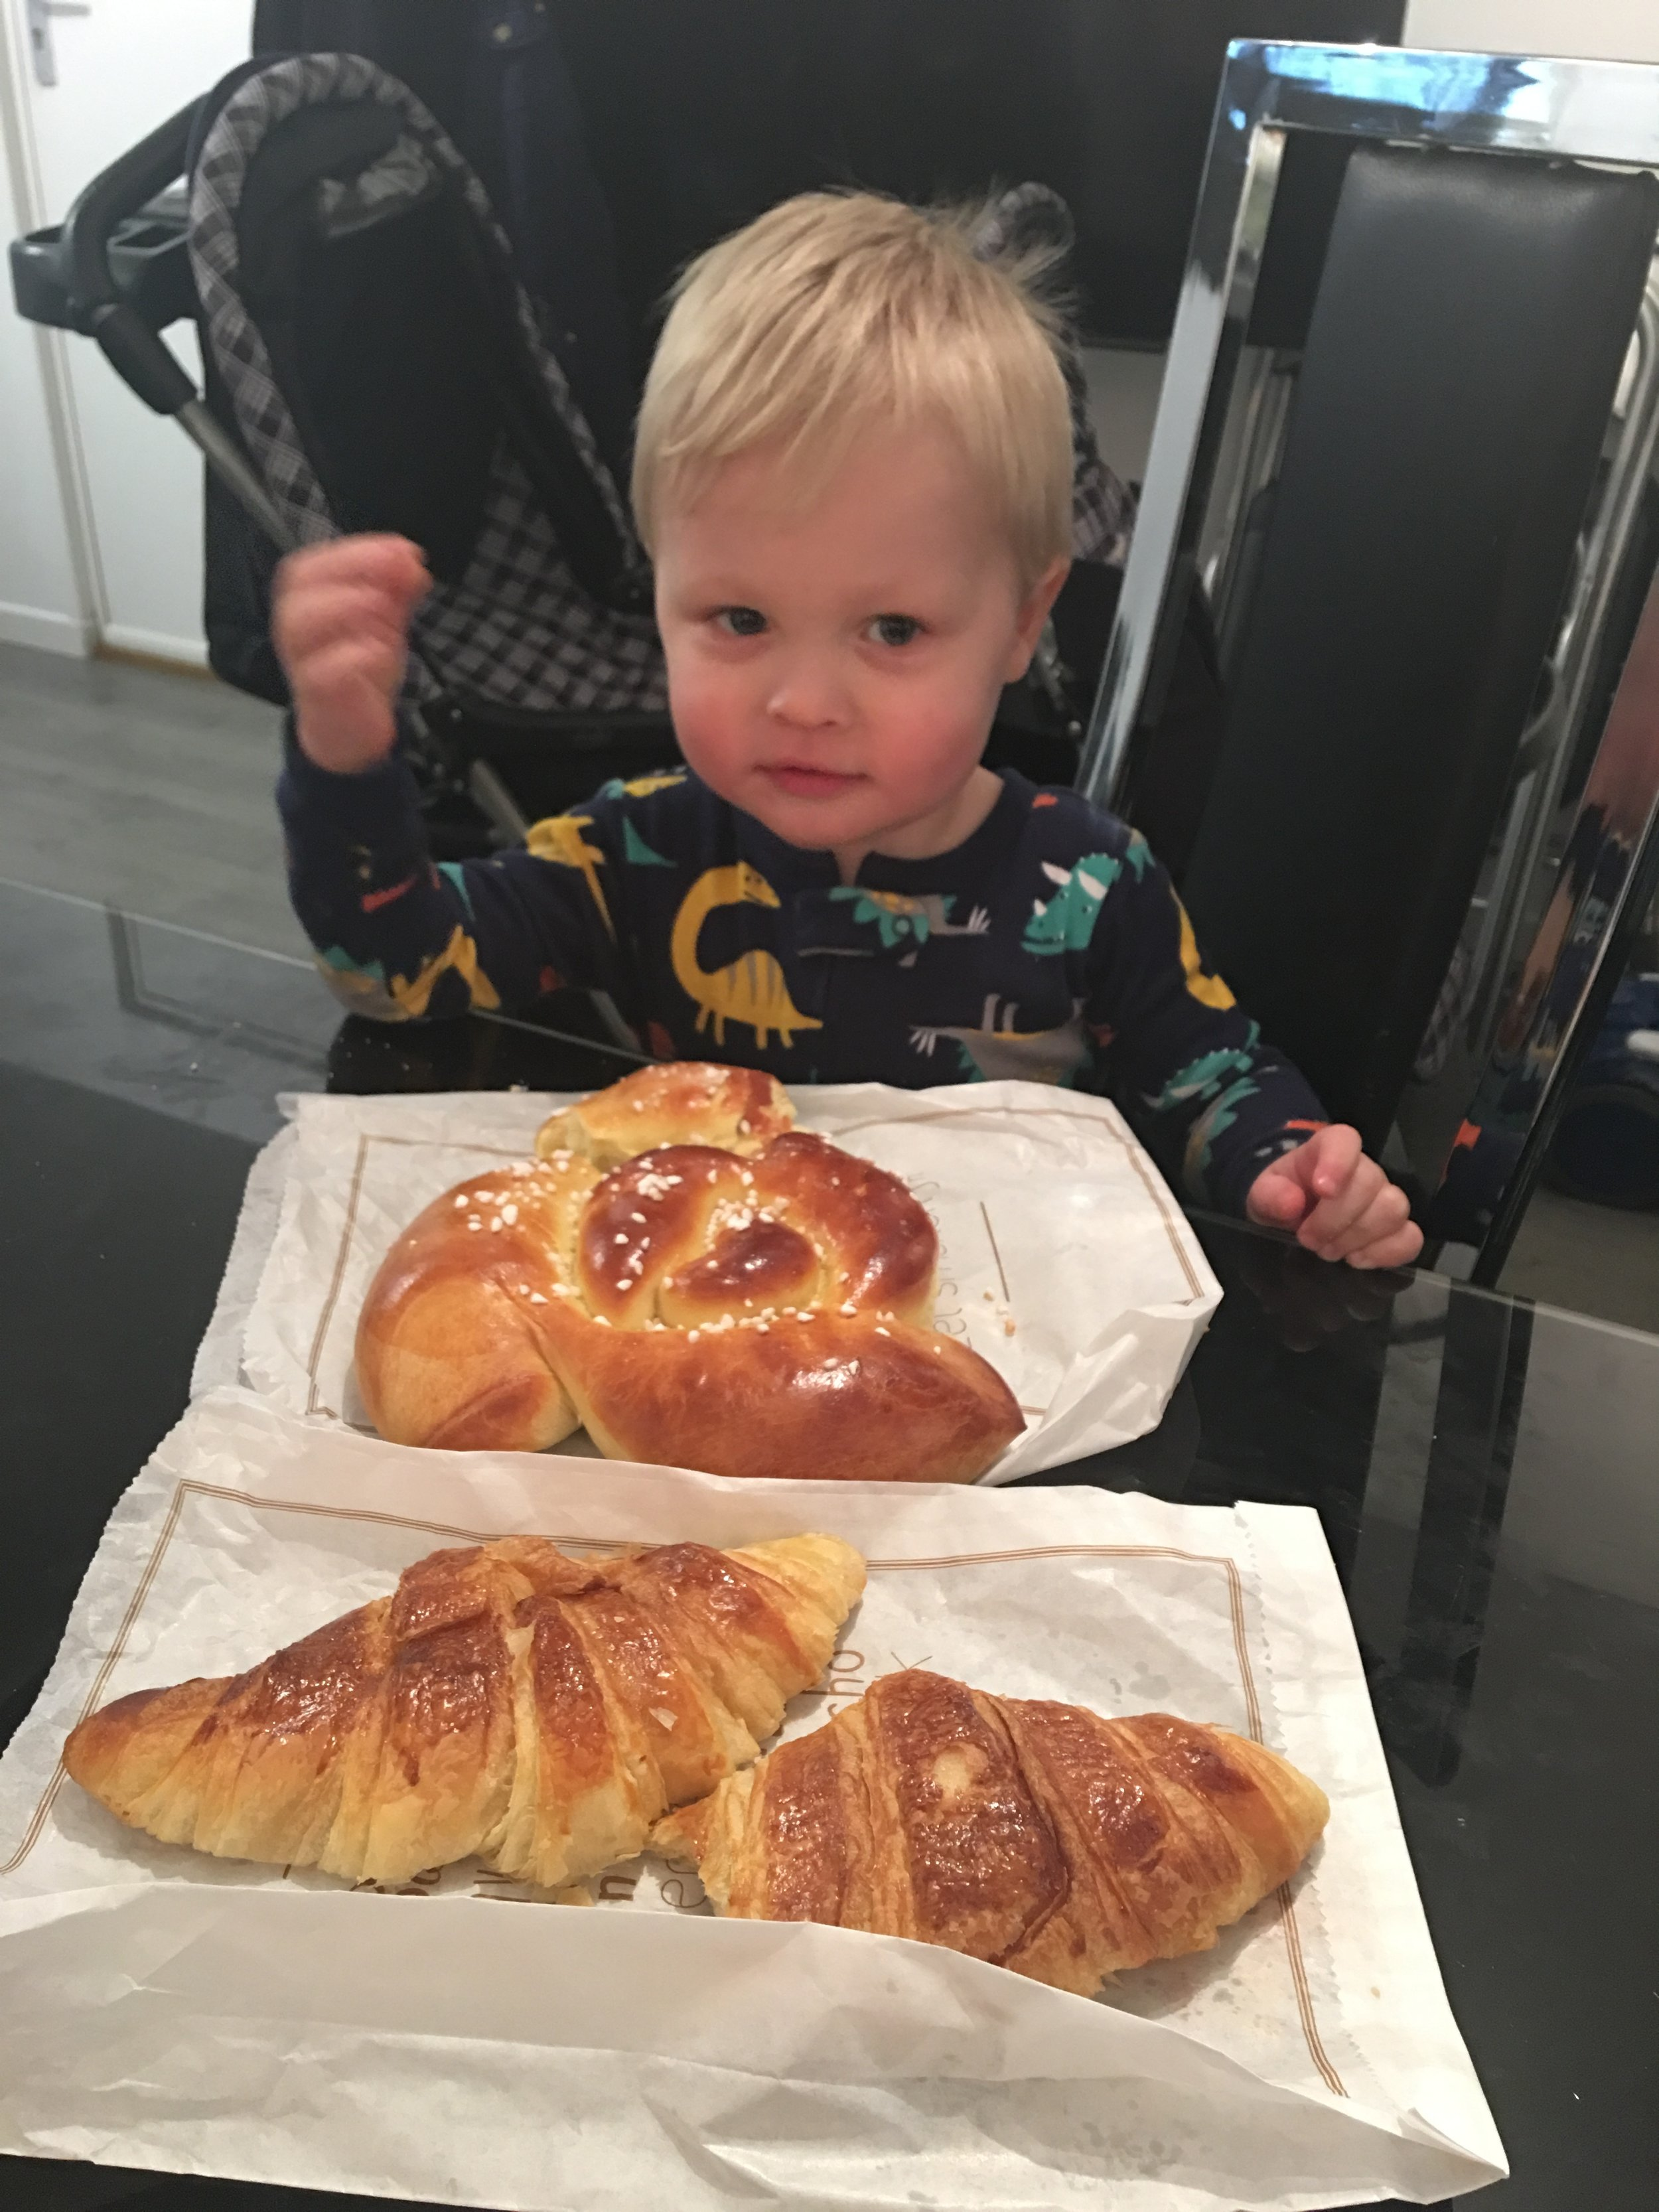 Bedhead and bakery bread